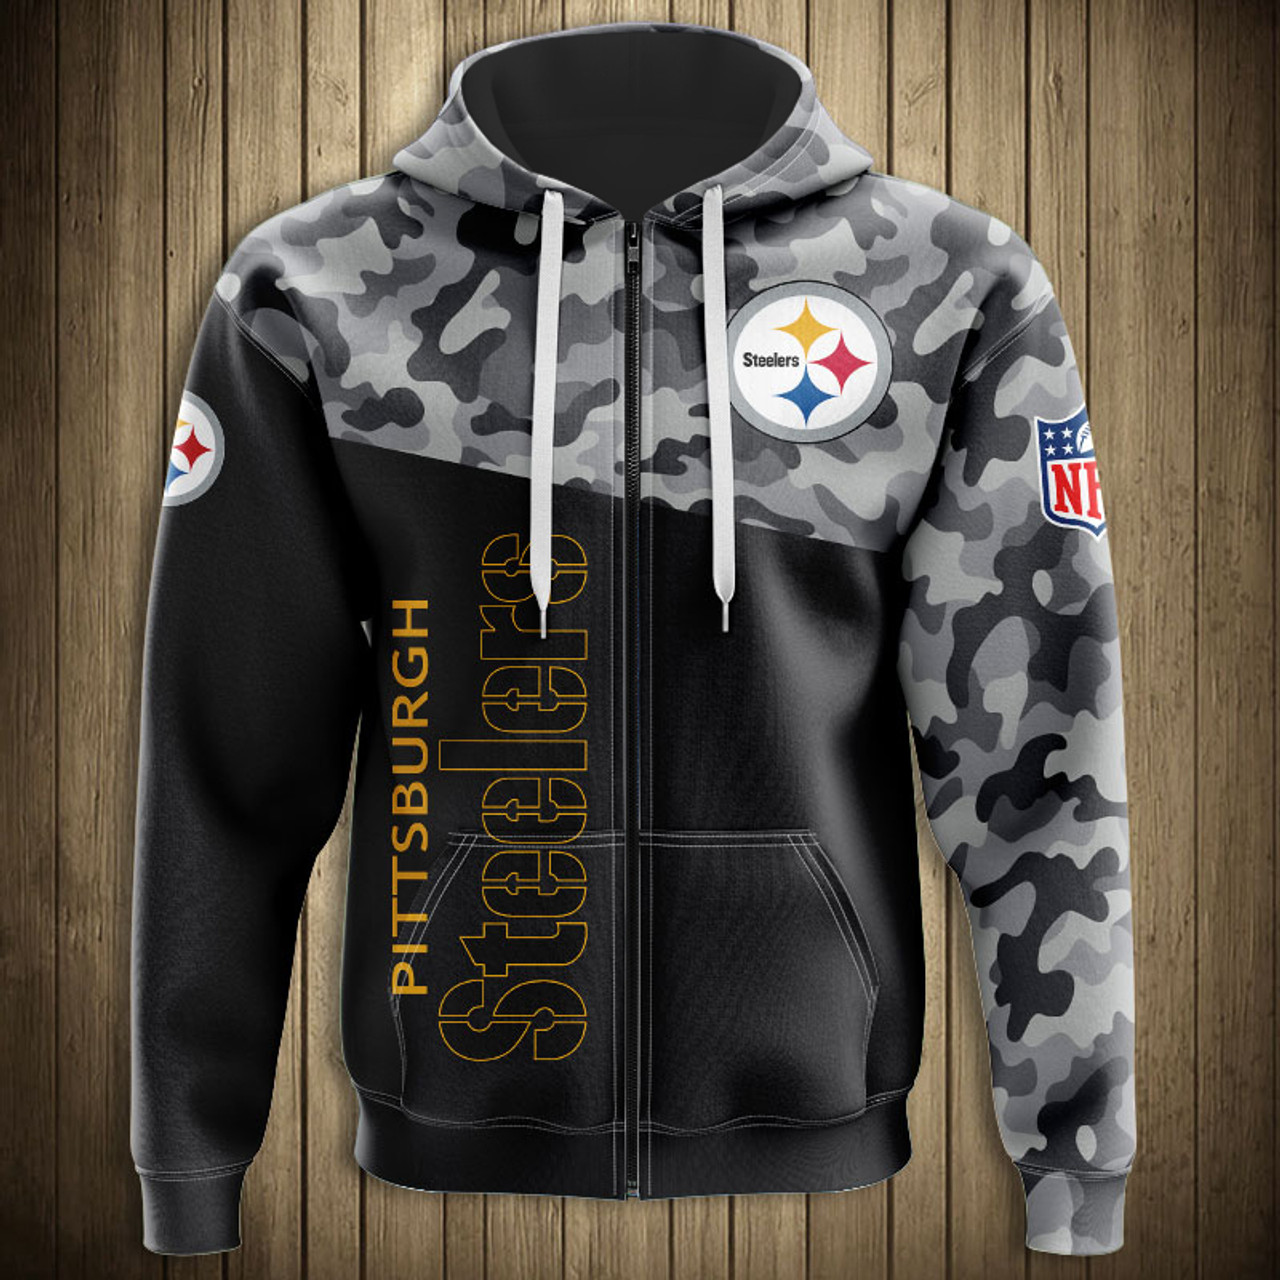 wholesale dealer ae4c7 804ad **(OFFICIAL-N.F.L.PITTSBURGH-STEELERS-CAMO.DESIGN-ZIPPERED-HOODIES/3D-CUSTOM-STEELERS-LOGOS  & OFFICIAL-STEELERS-TEAM-COLORS/DETAILED-3D-GRAPHIC-PRINTE...